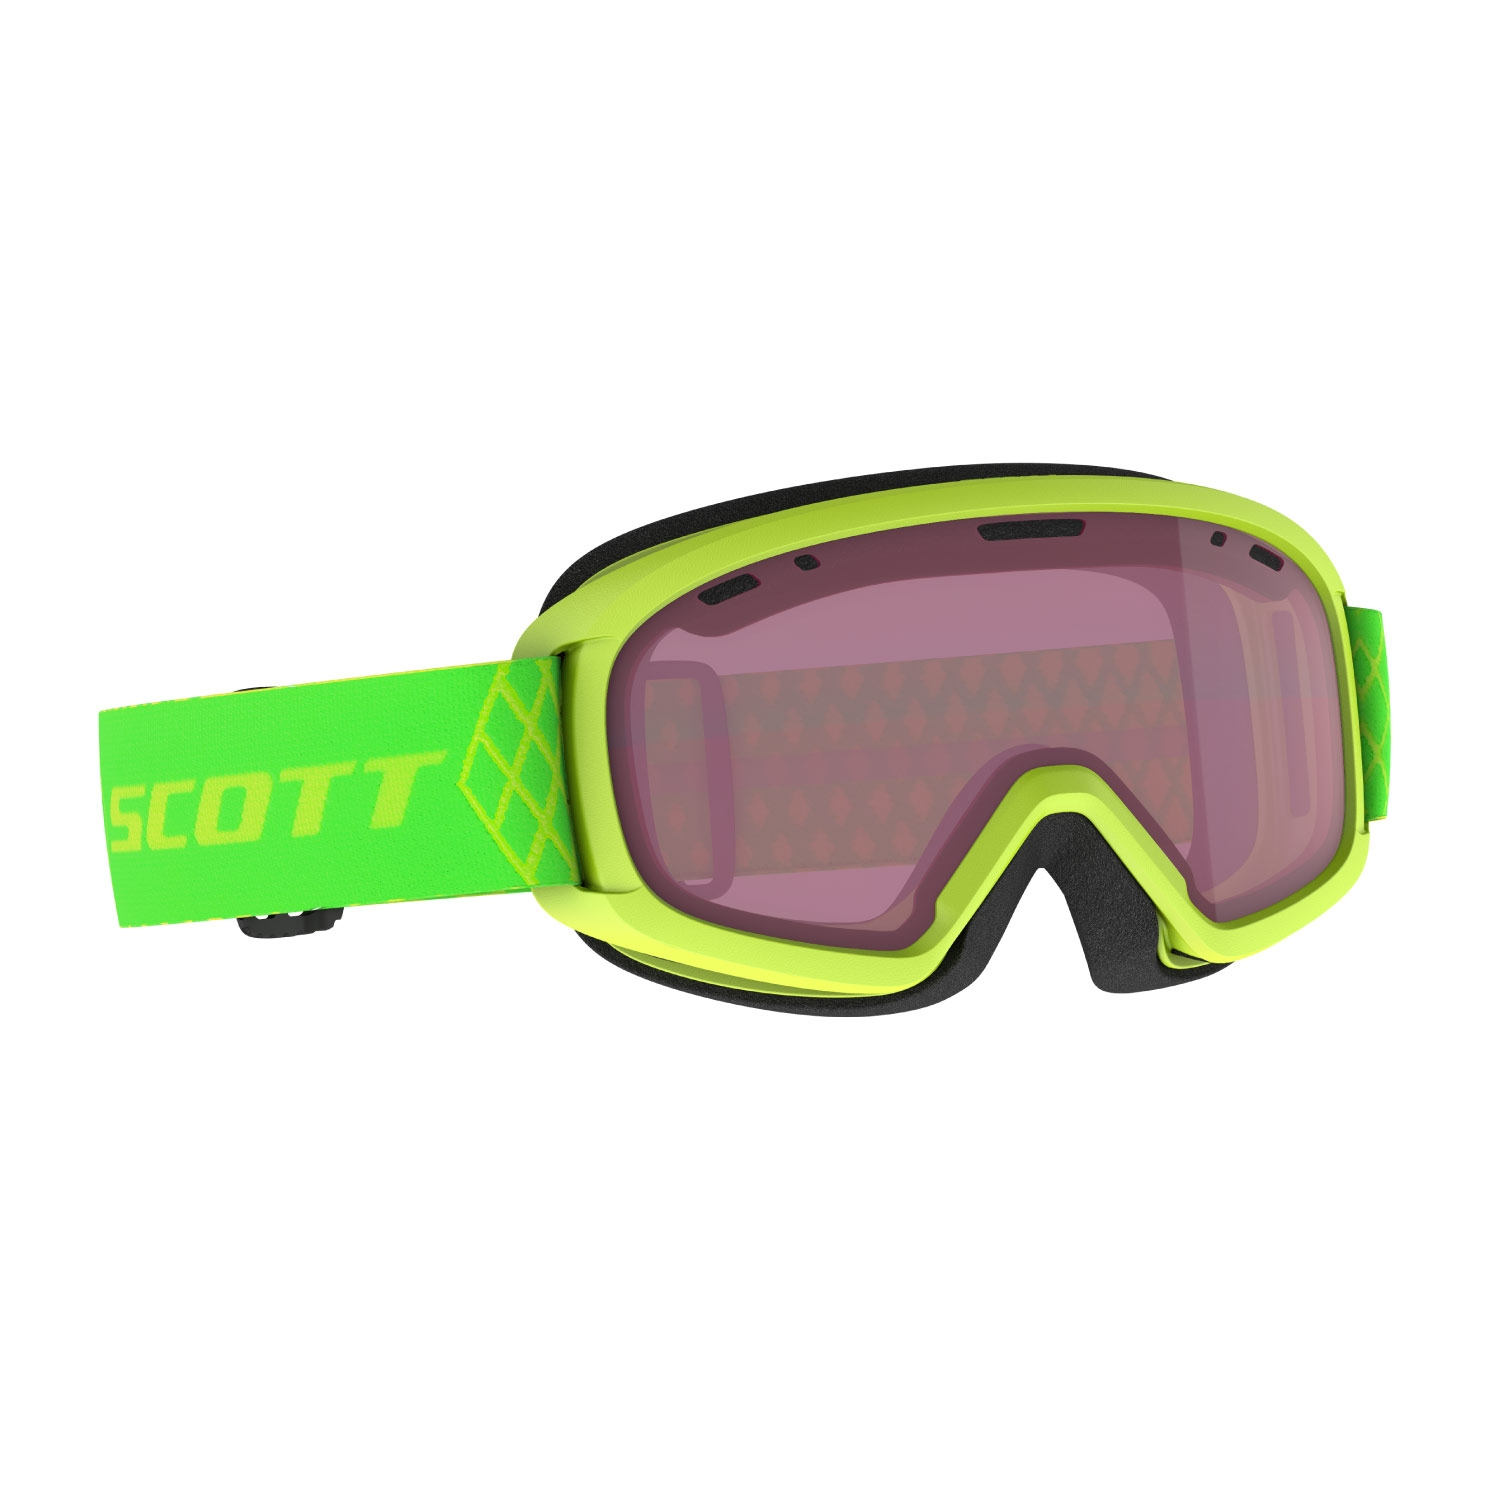 Scott Witty Junior Goggles High Viz Green/Enhancer 2021